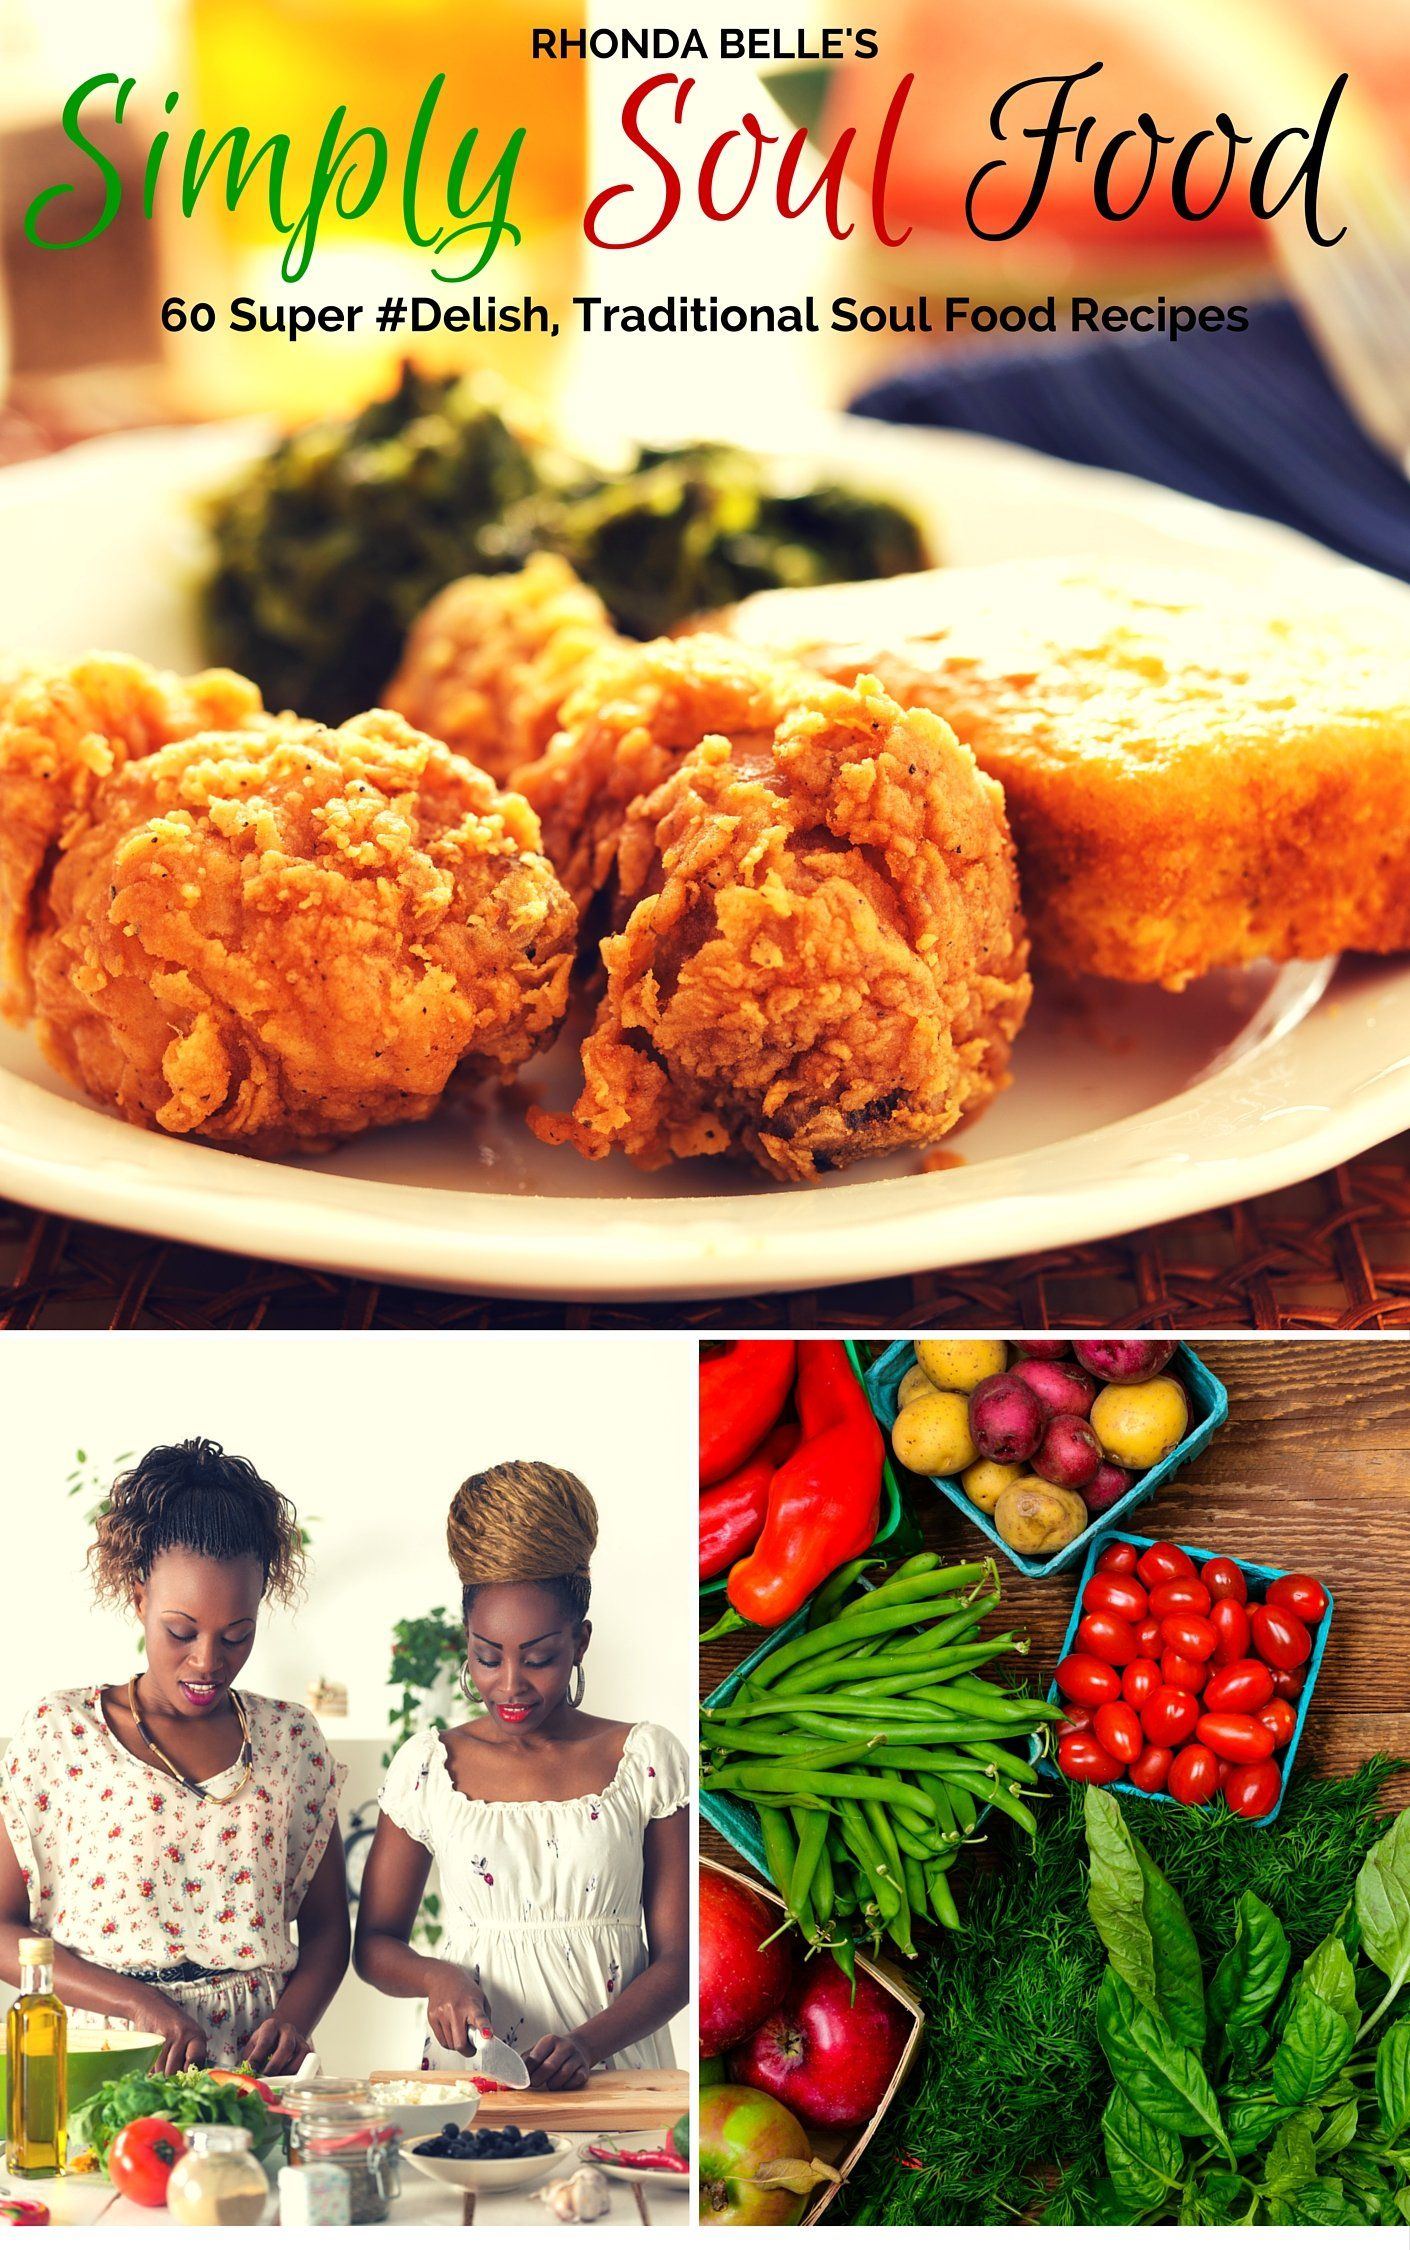 Simply soul food 60 super delish traditional soul food recipes 60 soul food recipes and cooking detailed in a short sweet cookbook home style entrees side dishes etc recipes for diabetics too forumfinder Choice Image